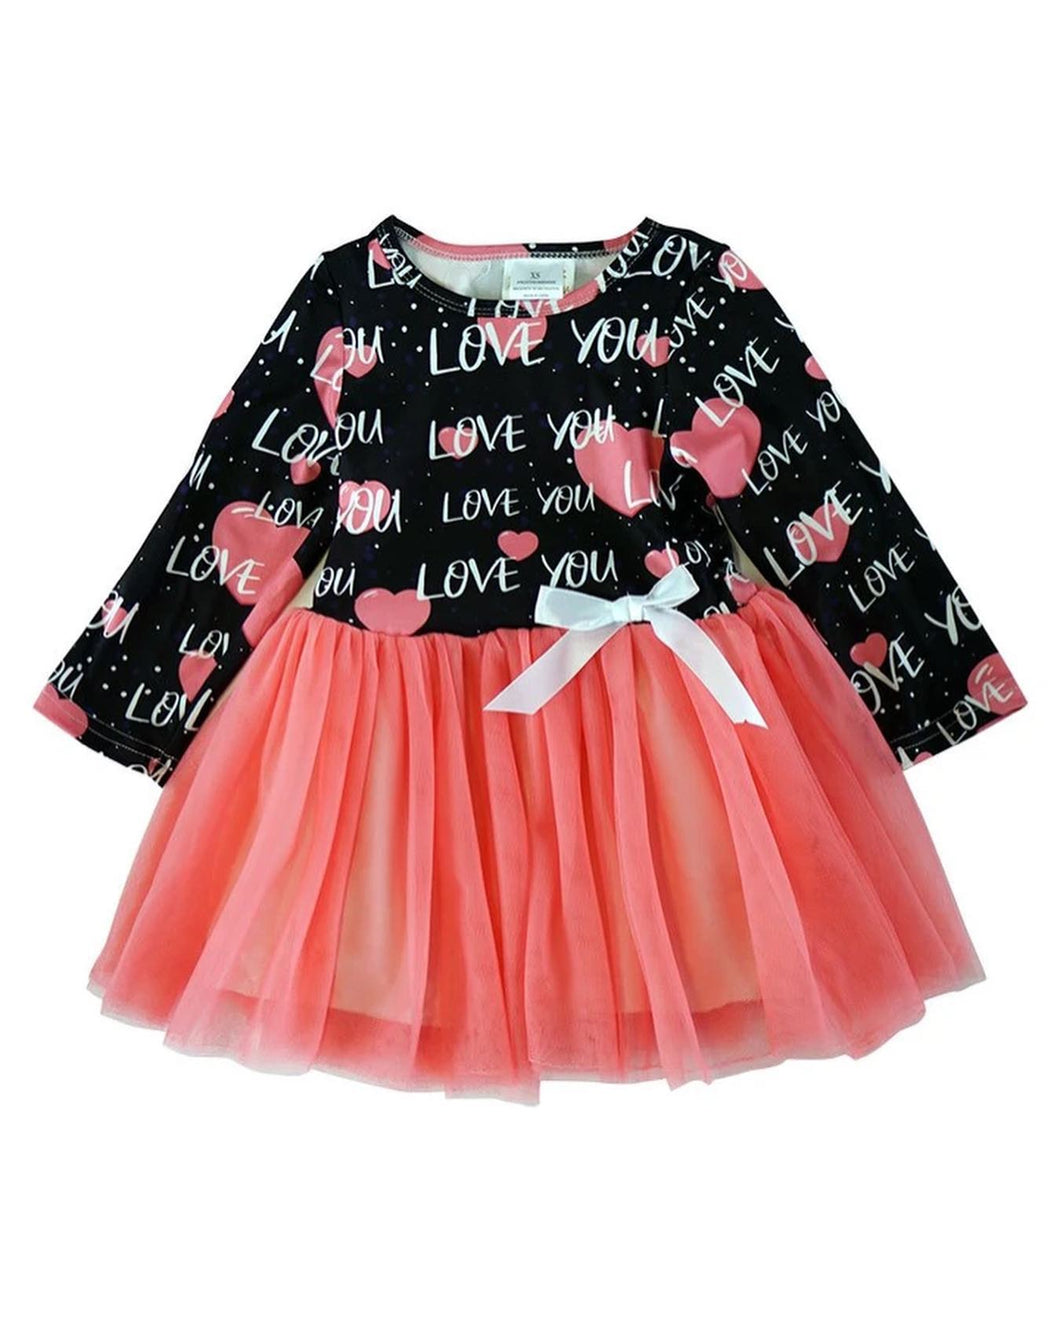 Love Hearts Tulle Dress